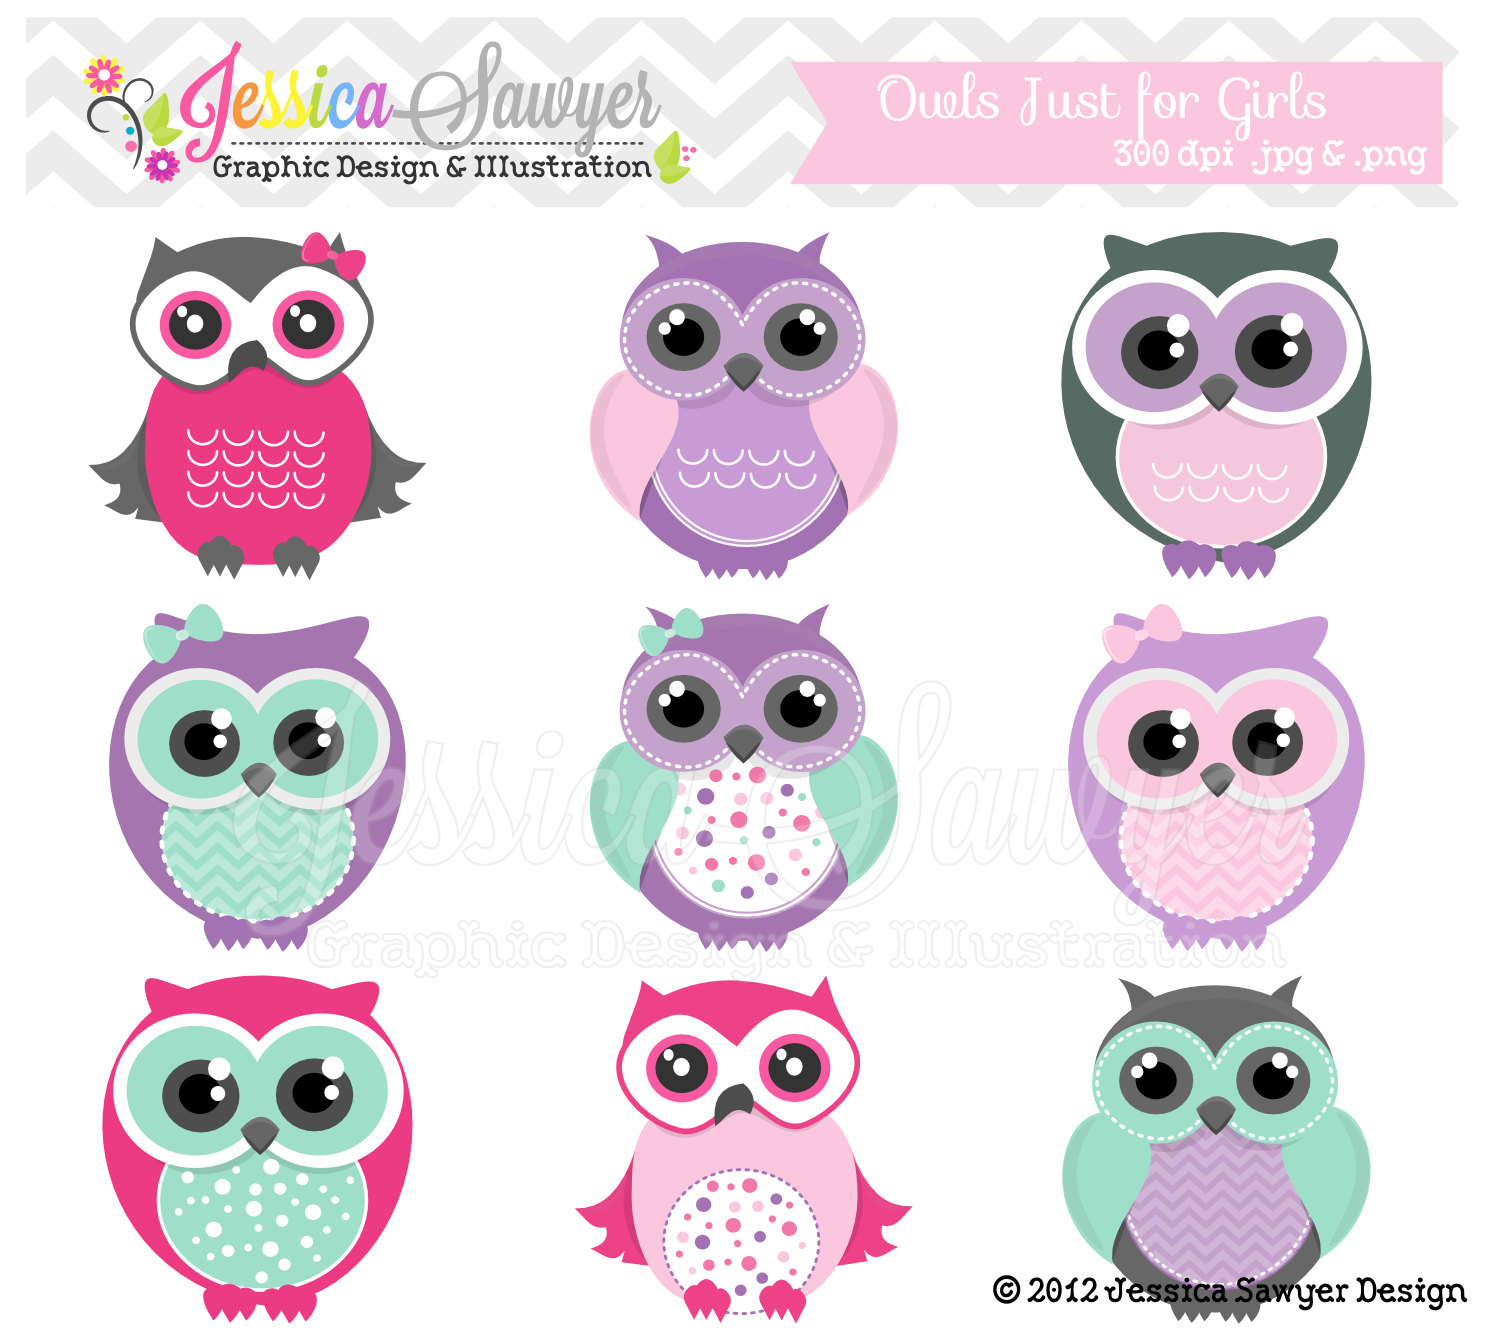 80  Off Instant Download Cute Owl Clipart By Jessicasawyerdesign